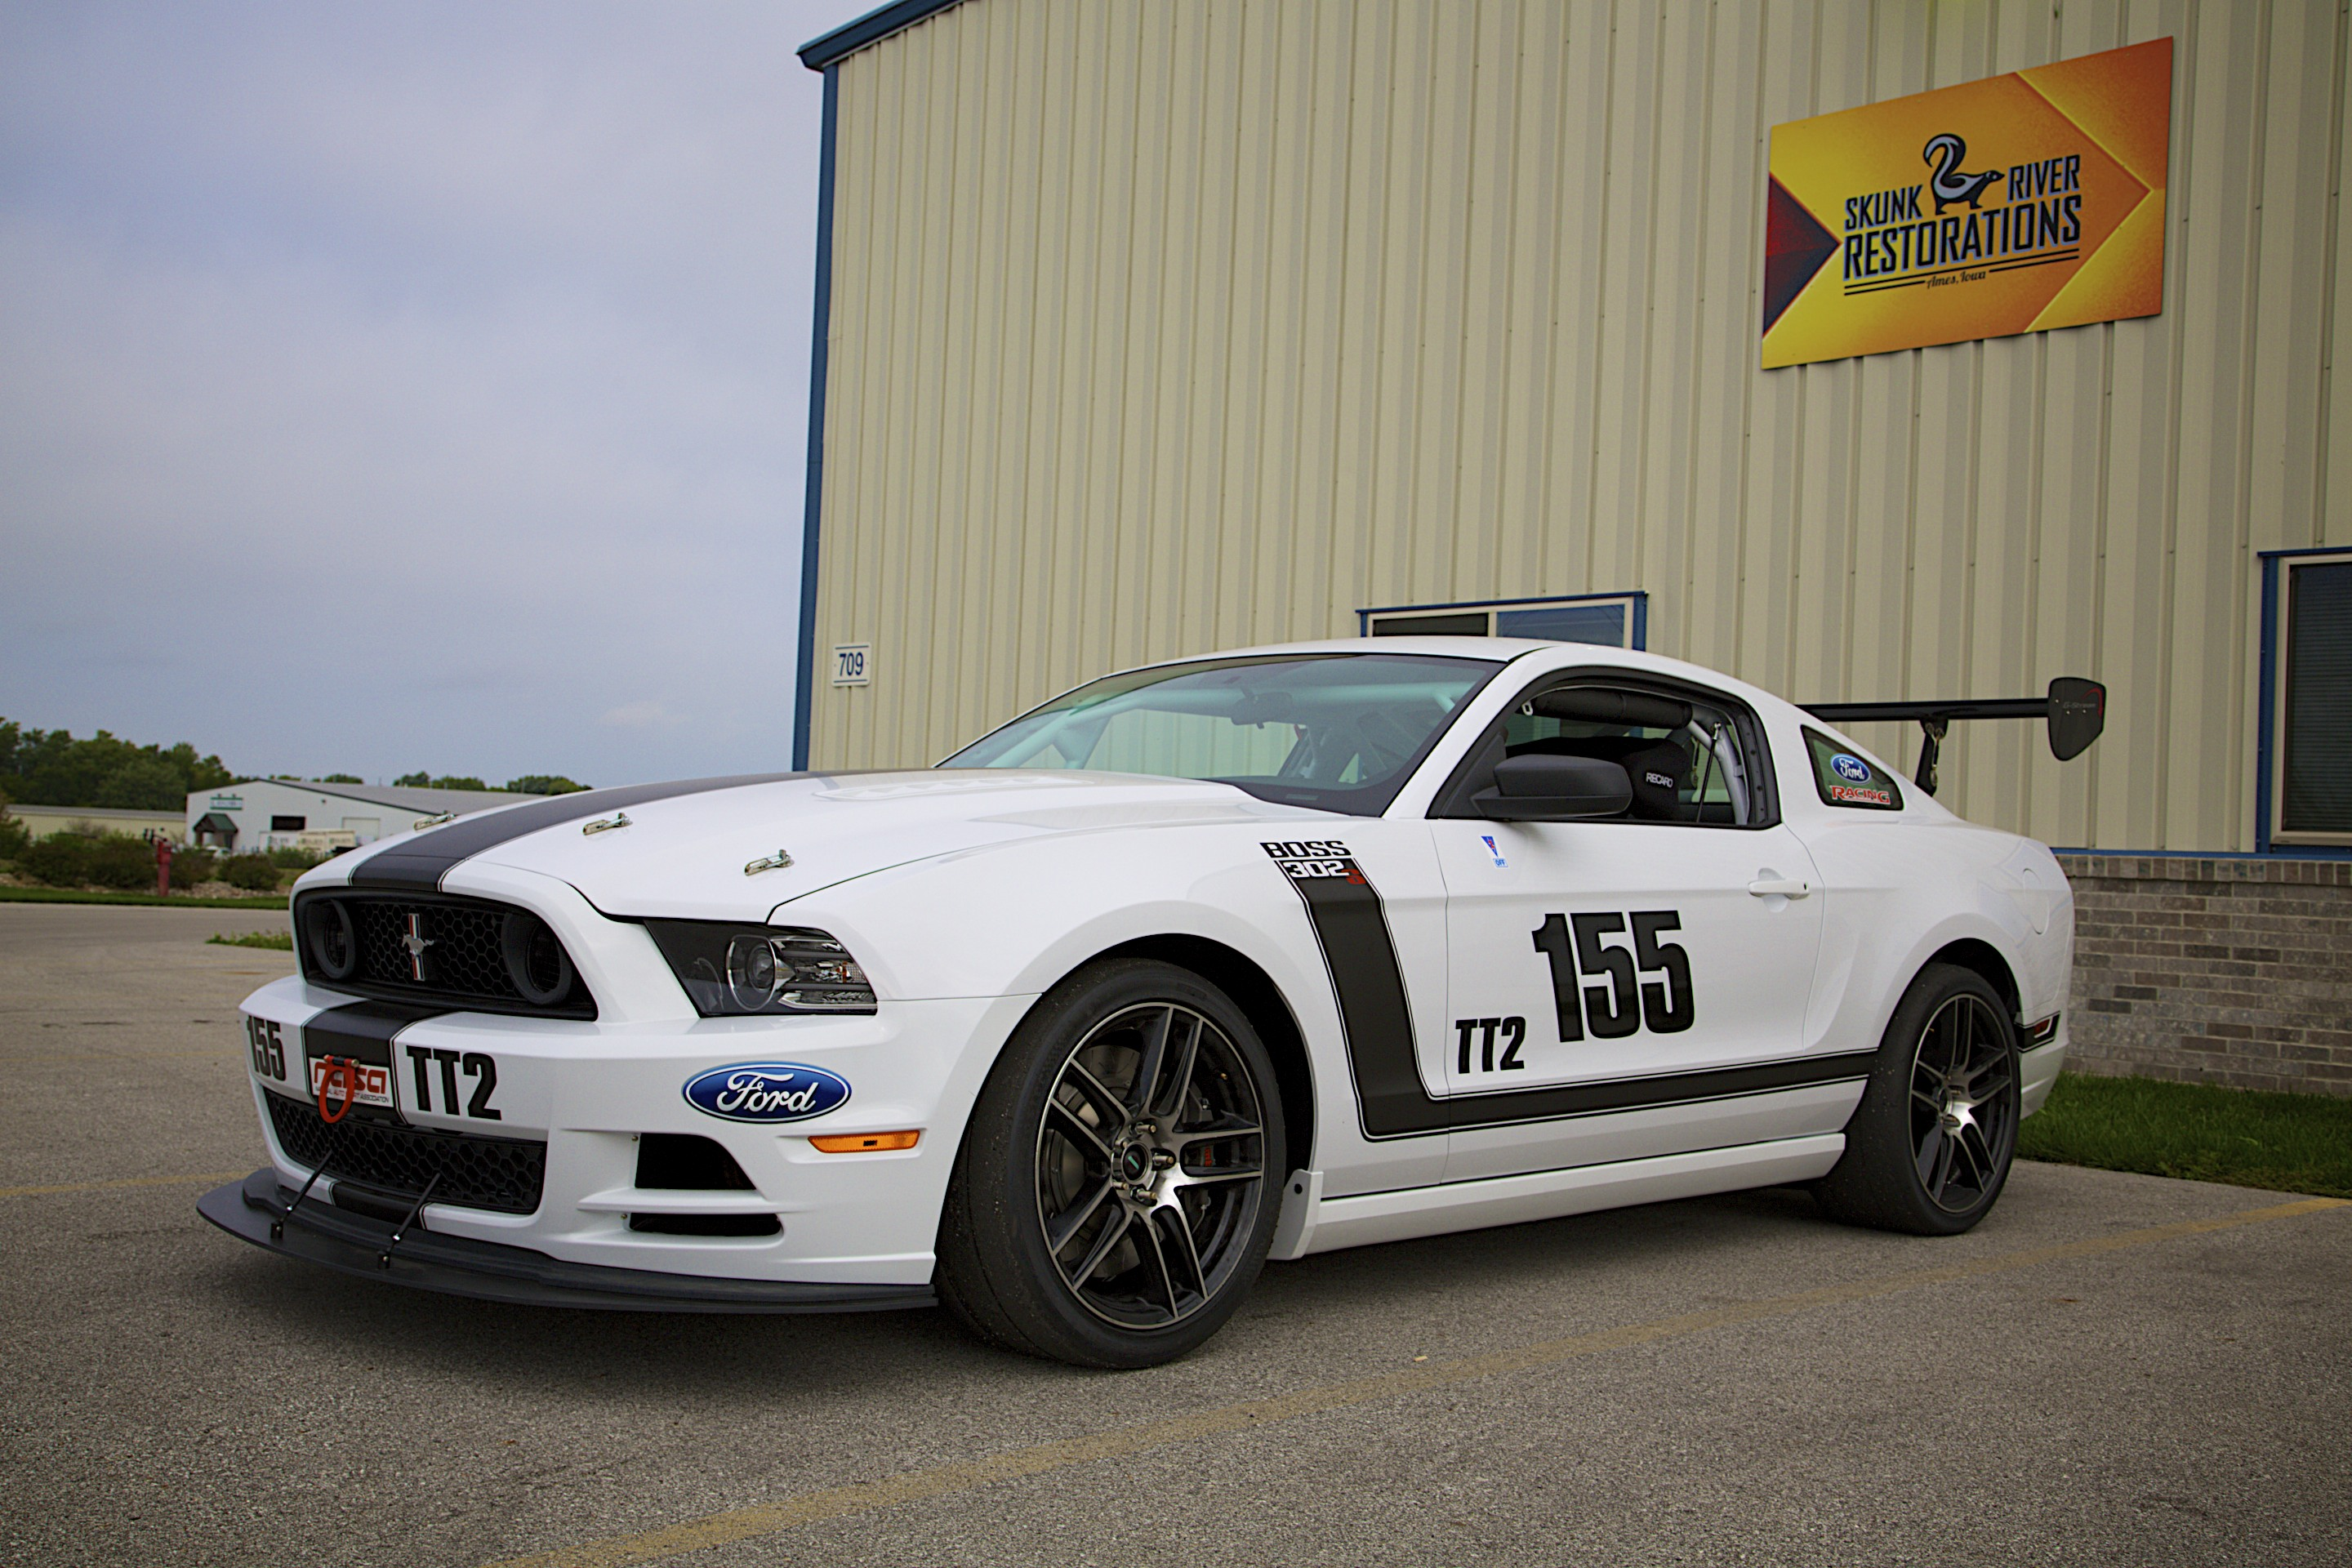 Ford Mustang Boss 302s Skunk River Restorations 2014